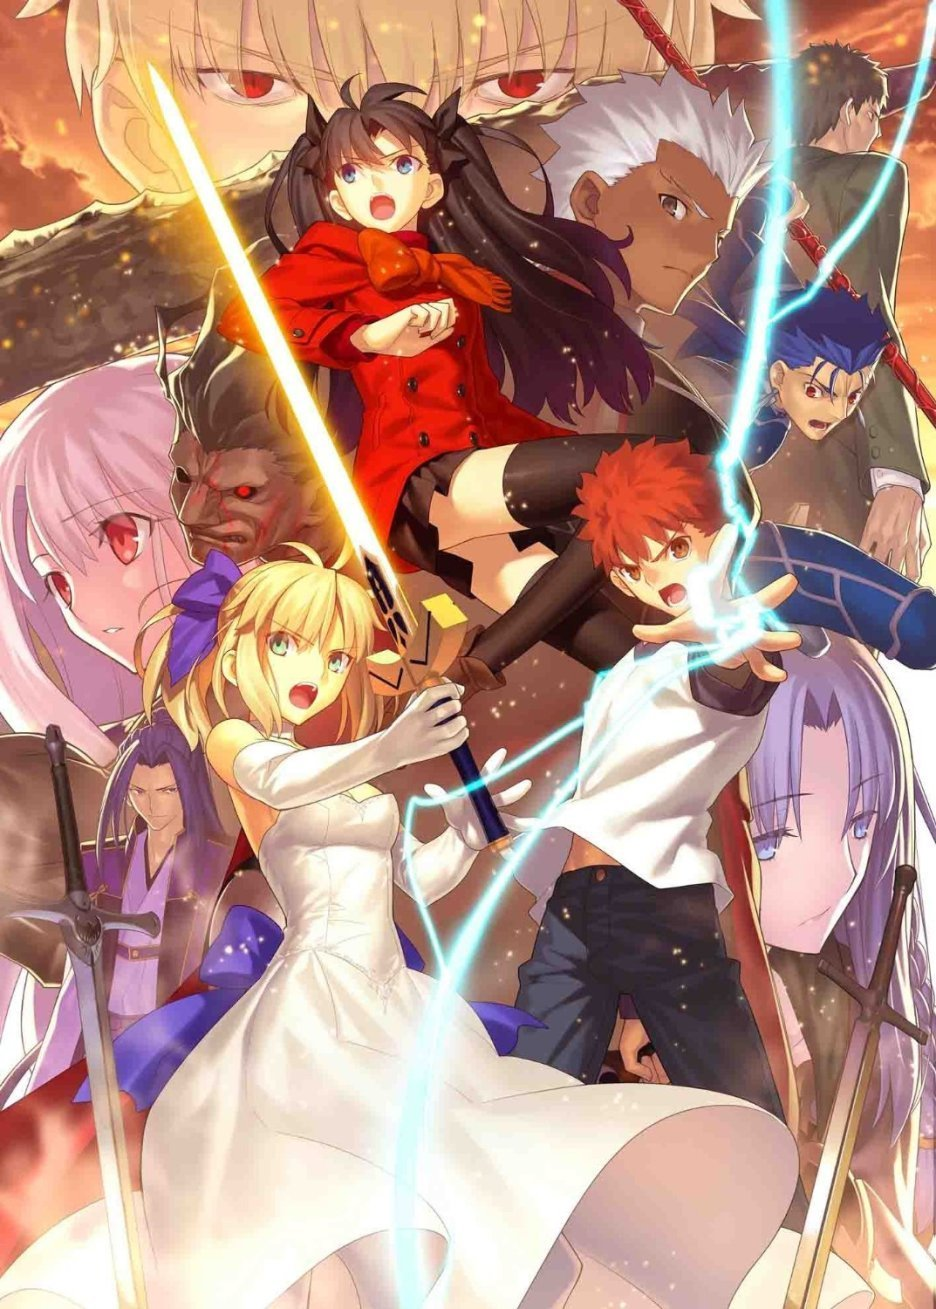 Fate/stay night [Unlimited Blade Works] Season 2 - Sunny Day.